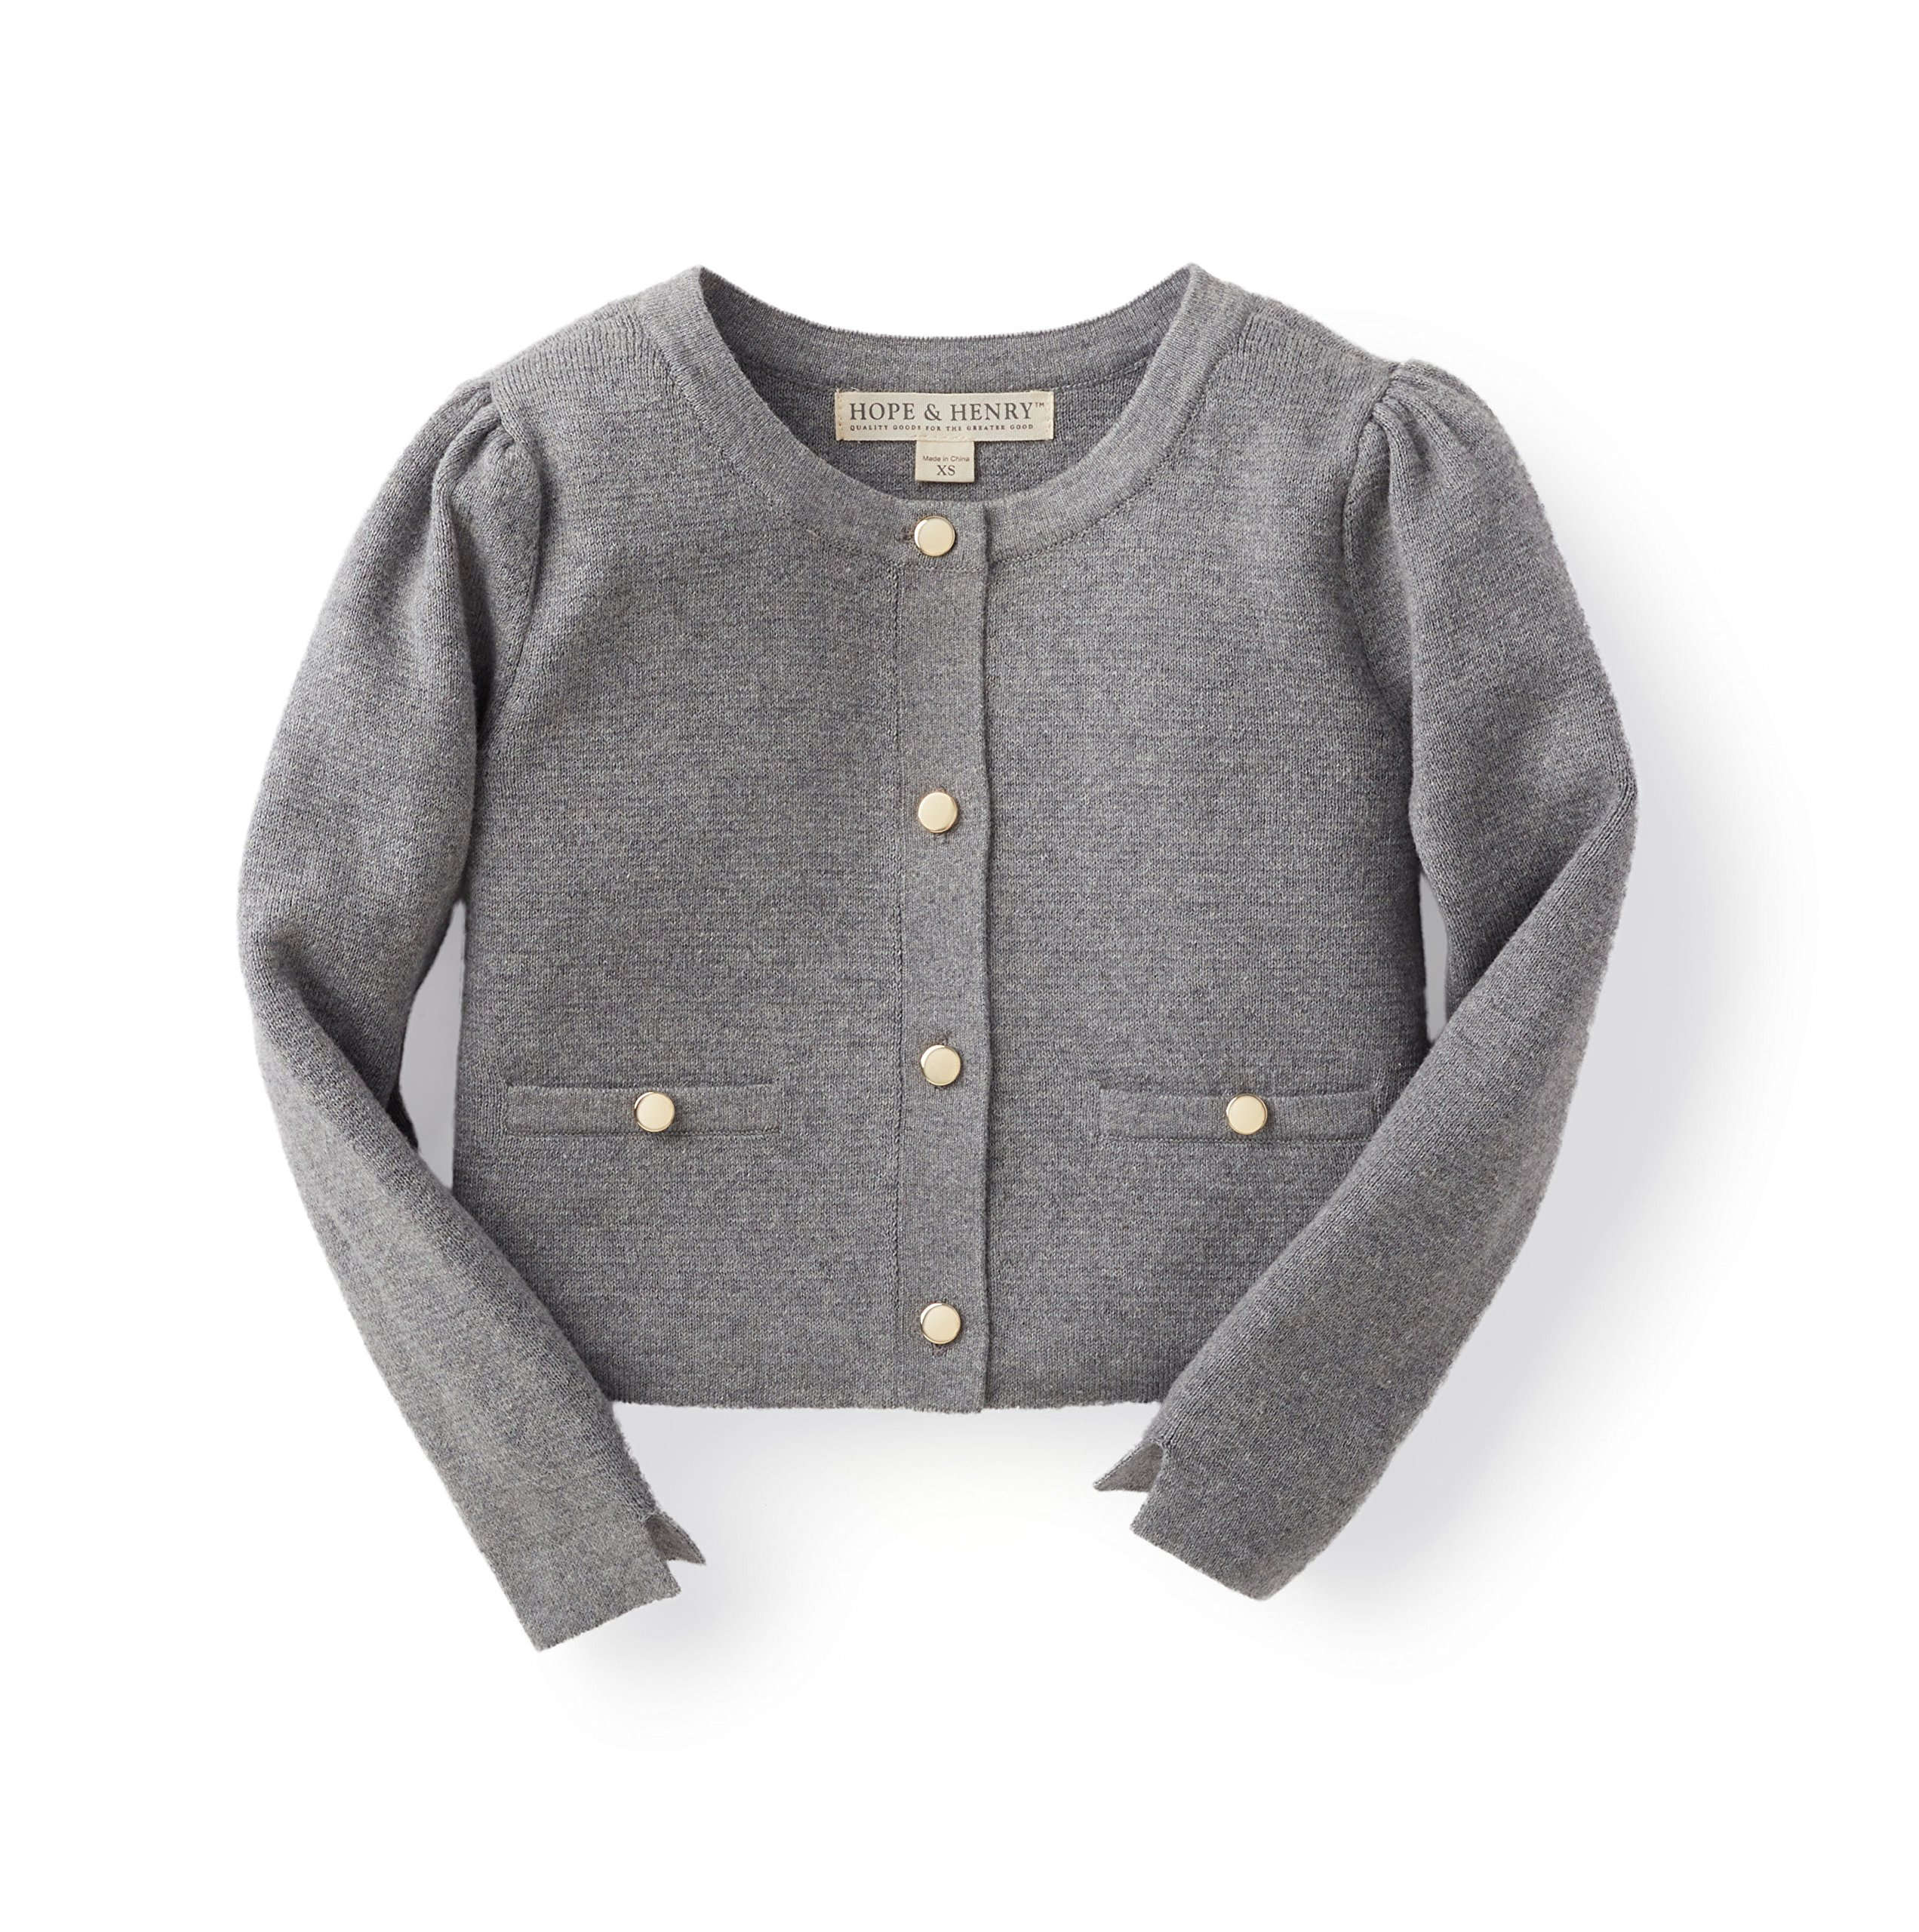 Hope & Henry Girls Milano Stitch Cardigan Sweater